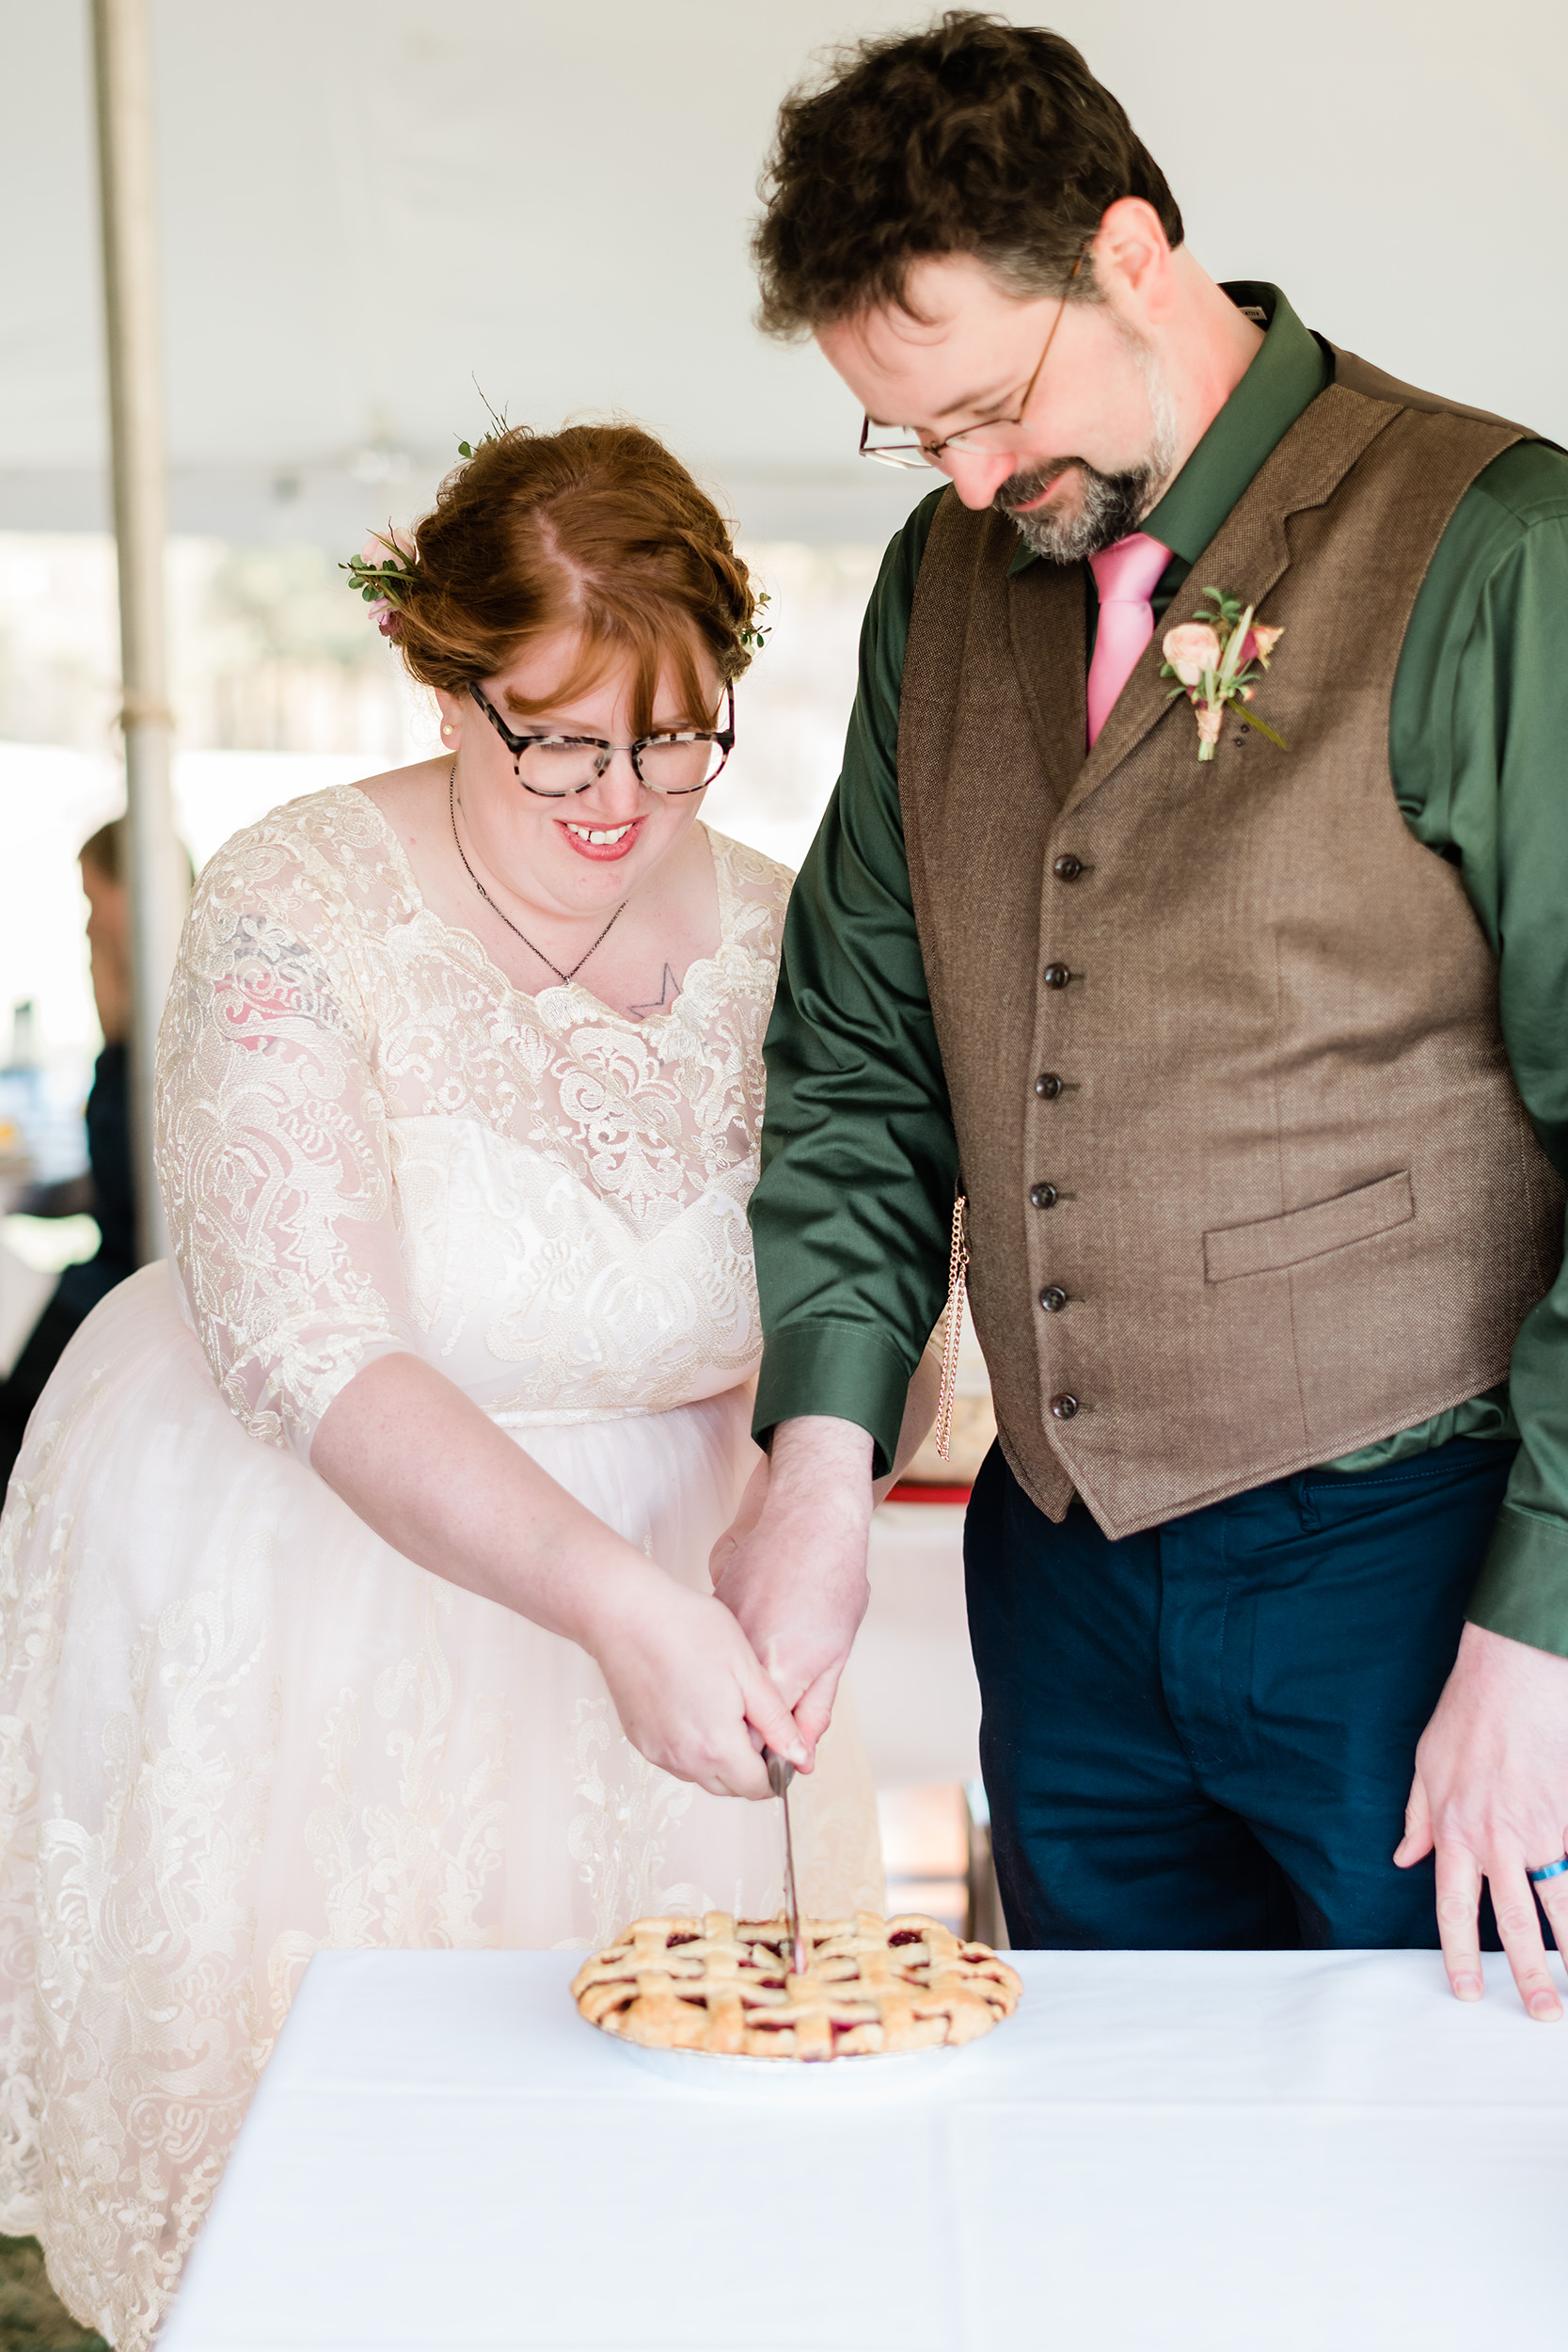 Bride and groom cutting pie